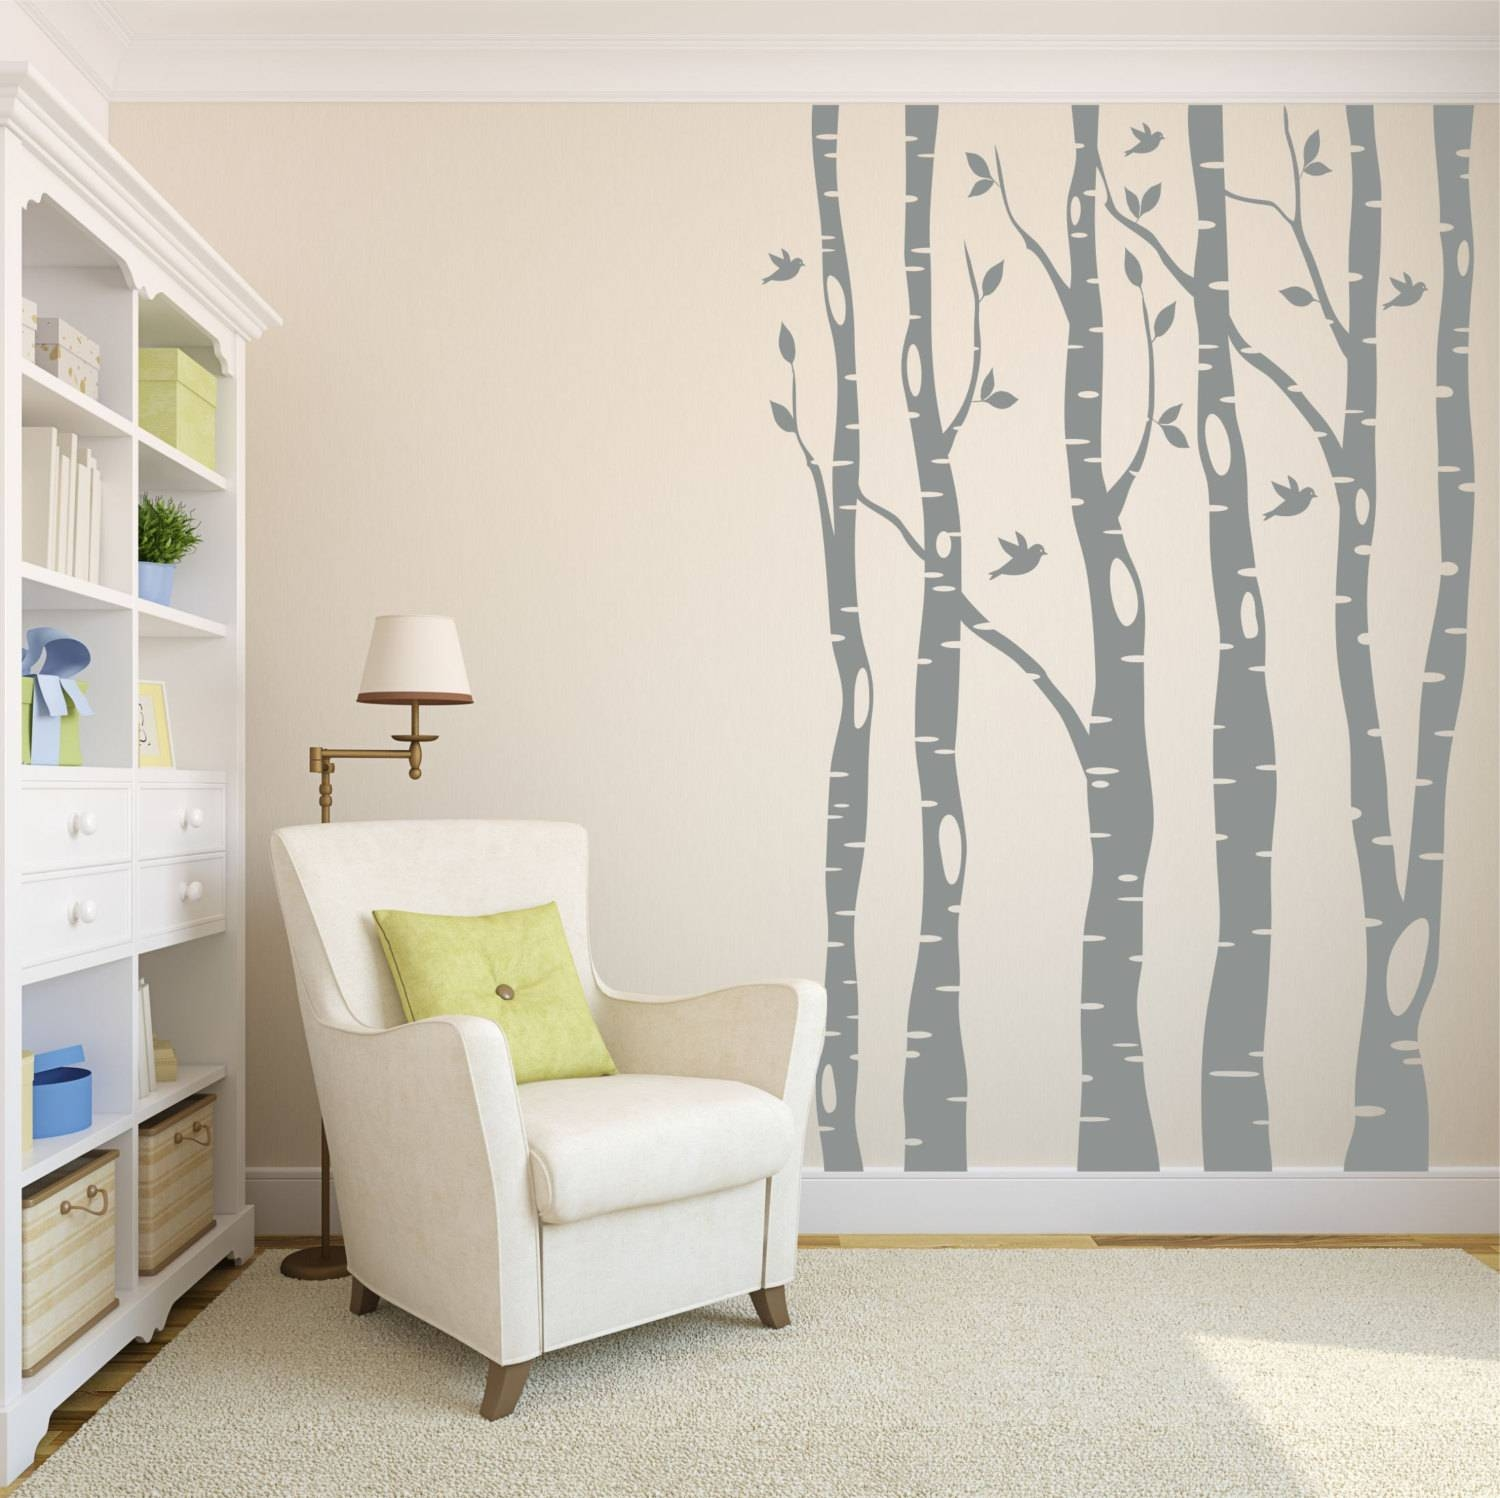 Tree Wall Decals // Birch Tree Decals // Living Room Decor // With Regard To Recent Aspen Tree Wall Art (View 12 of 20)